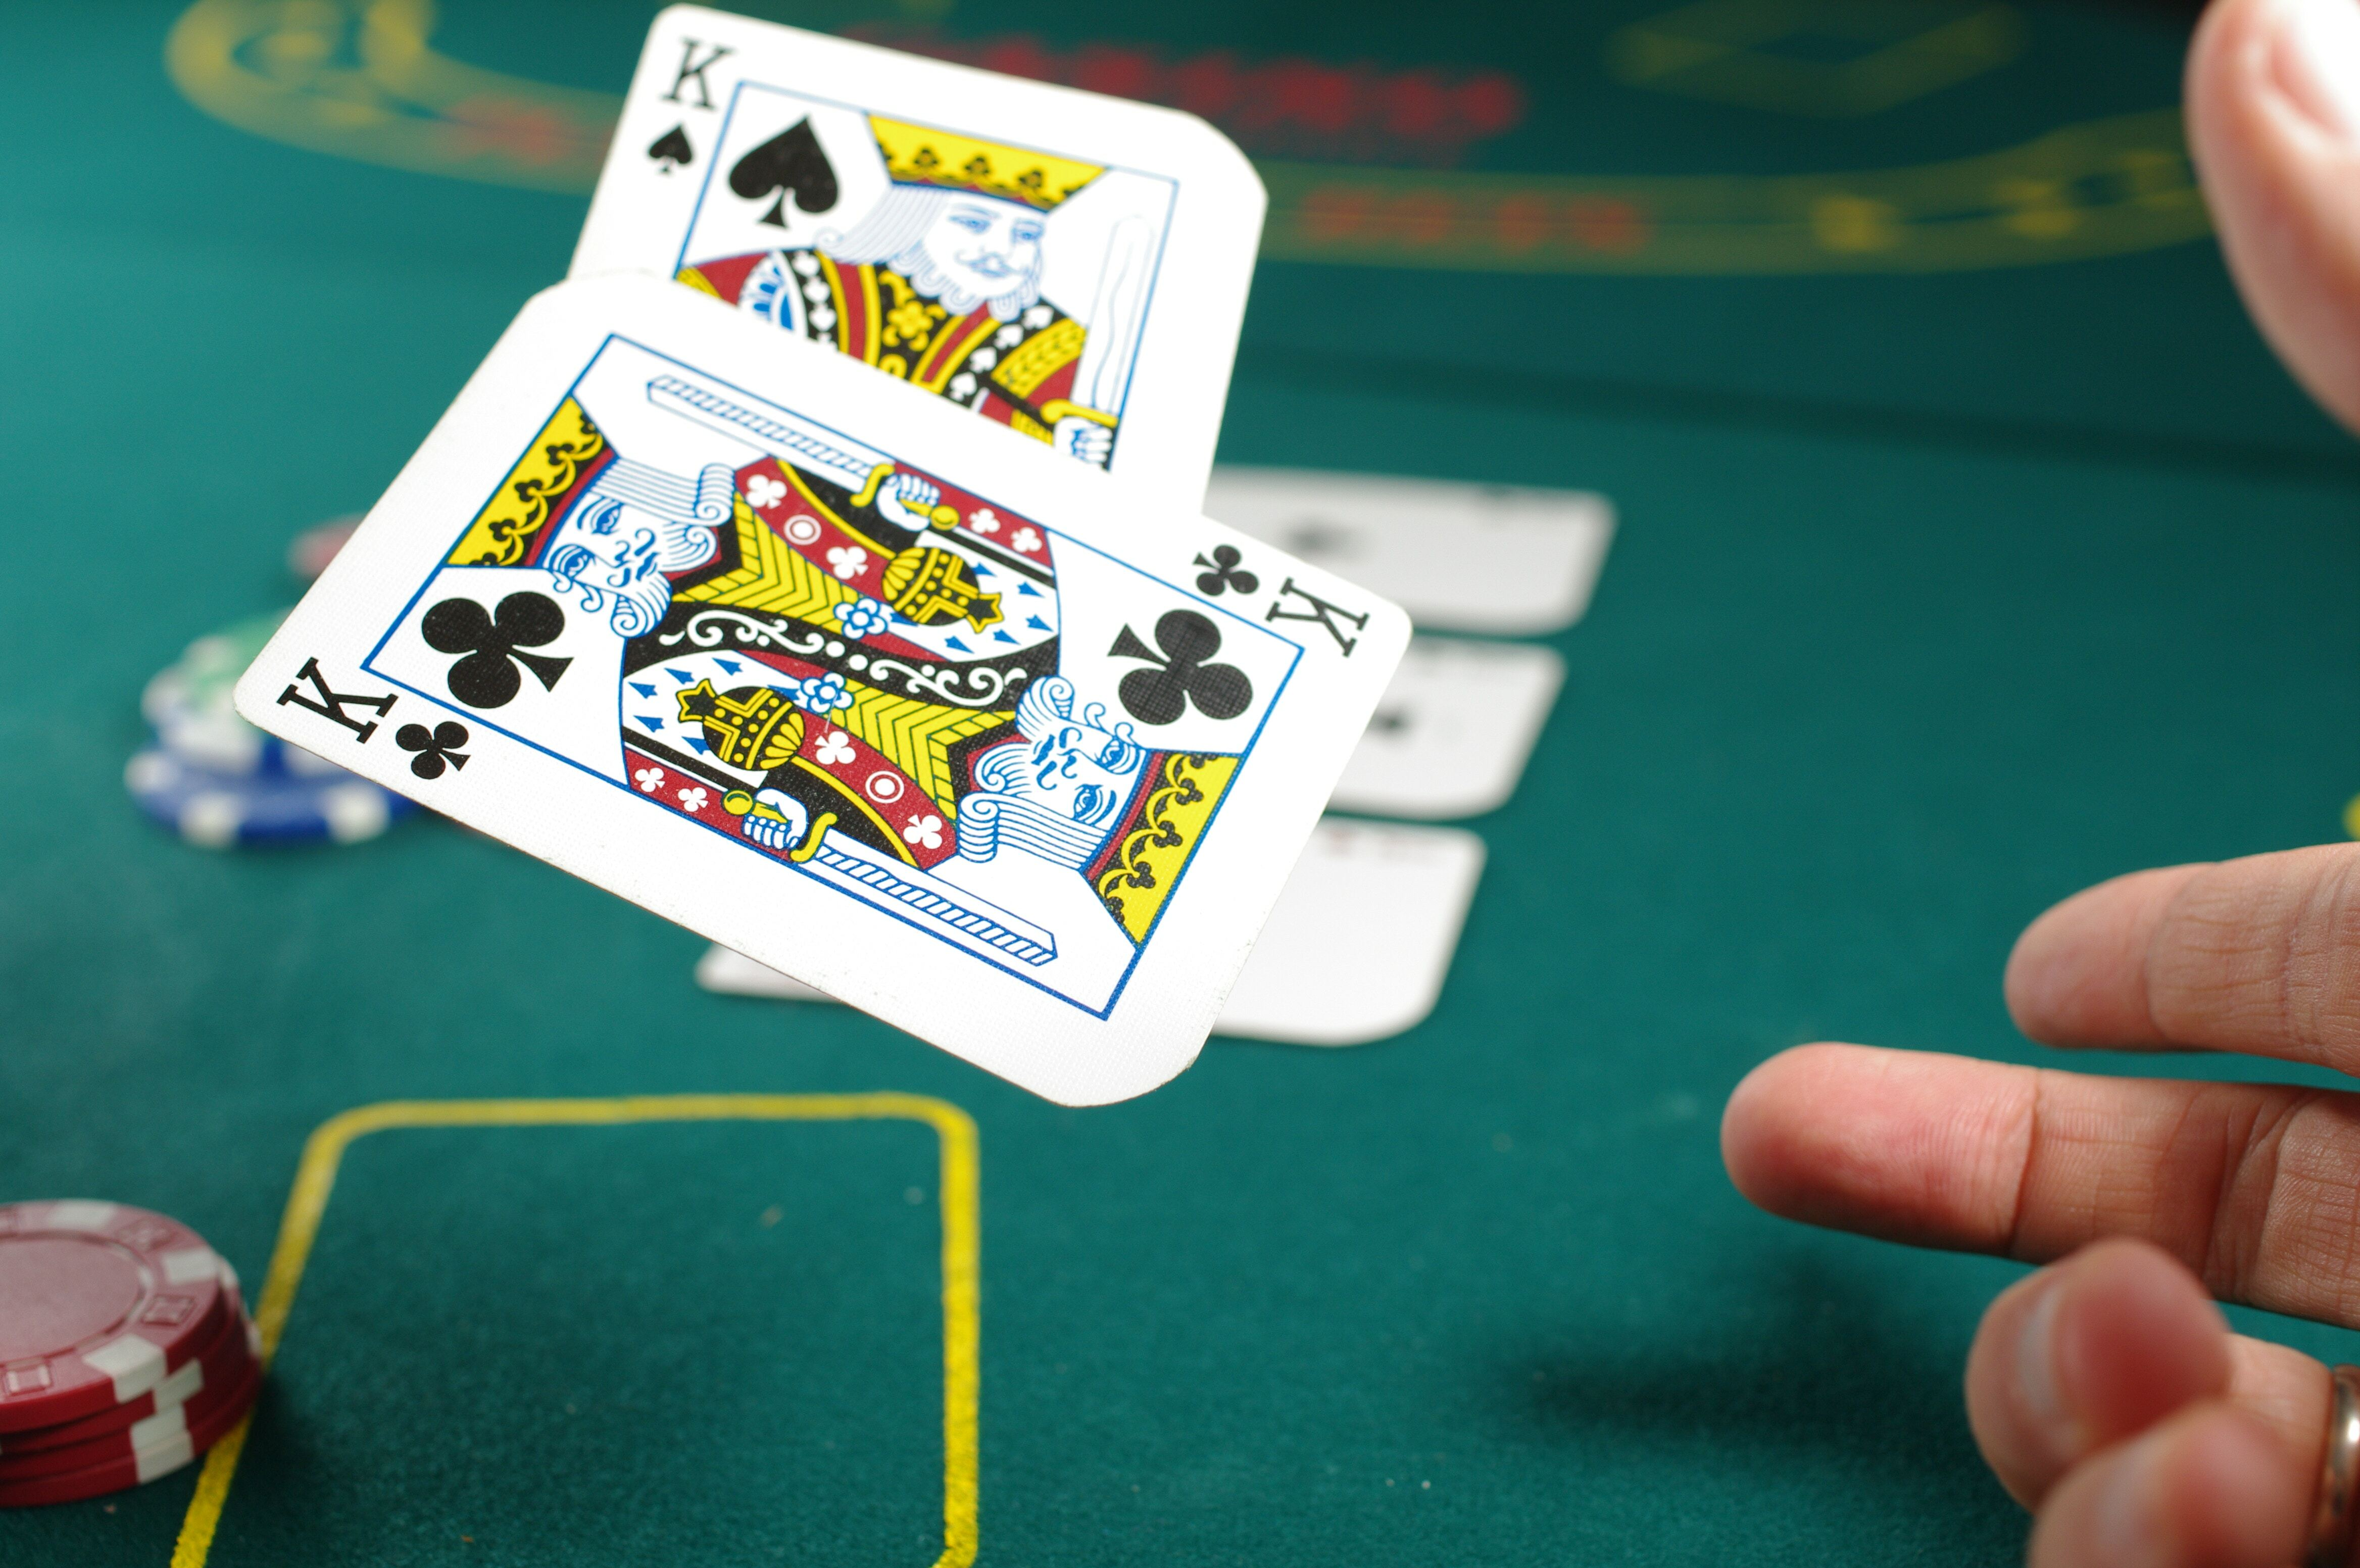 Get Your Free Bet Promo Codes And Play Poker Poker Tables Chips